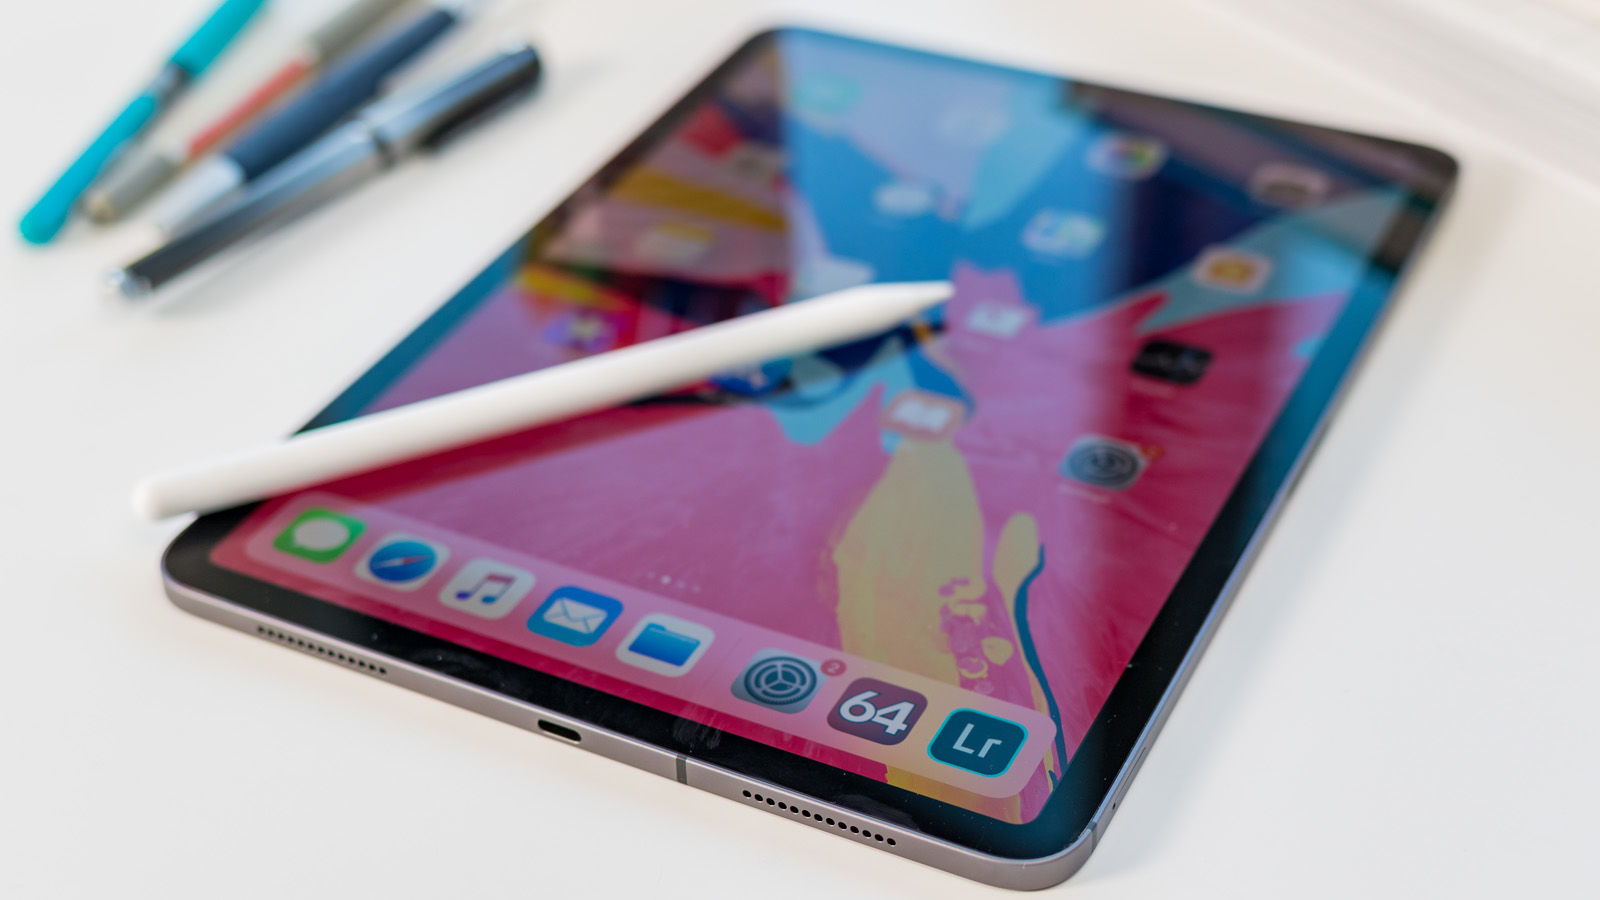 Apple iPad Pro 2020 Specs Revealed, Two Display Options Variant will Release this Year